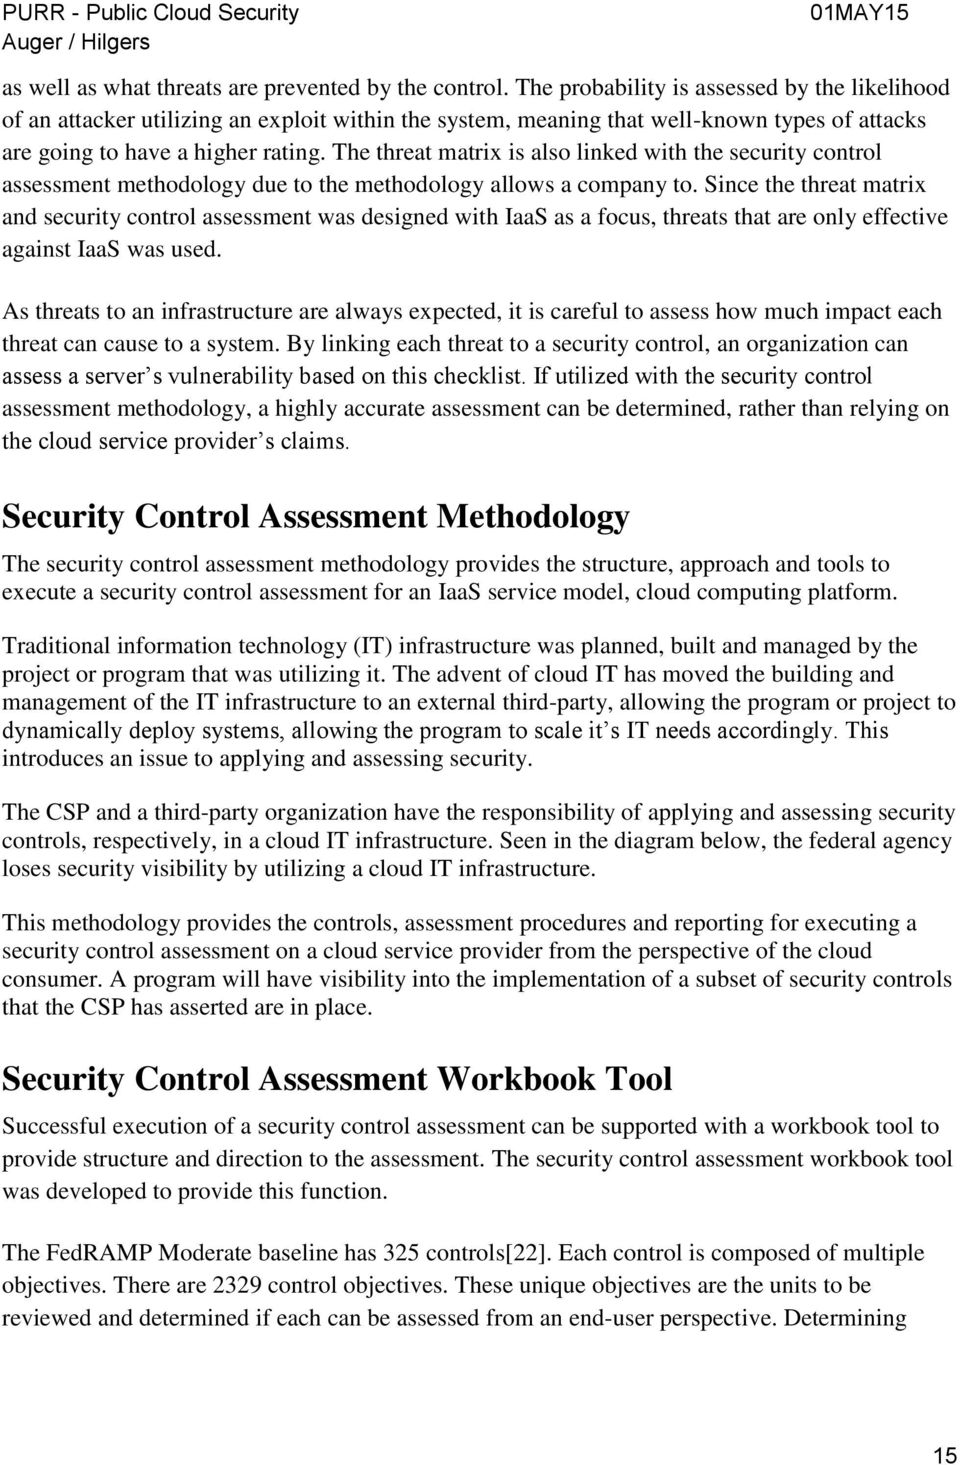 The threat matrix is also linked with the security control assessment methodology due to the methodology allows a company to.